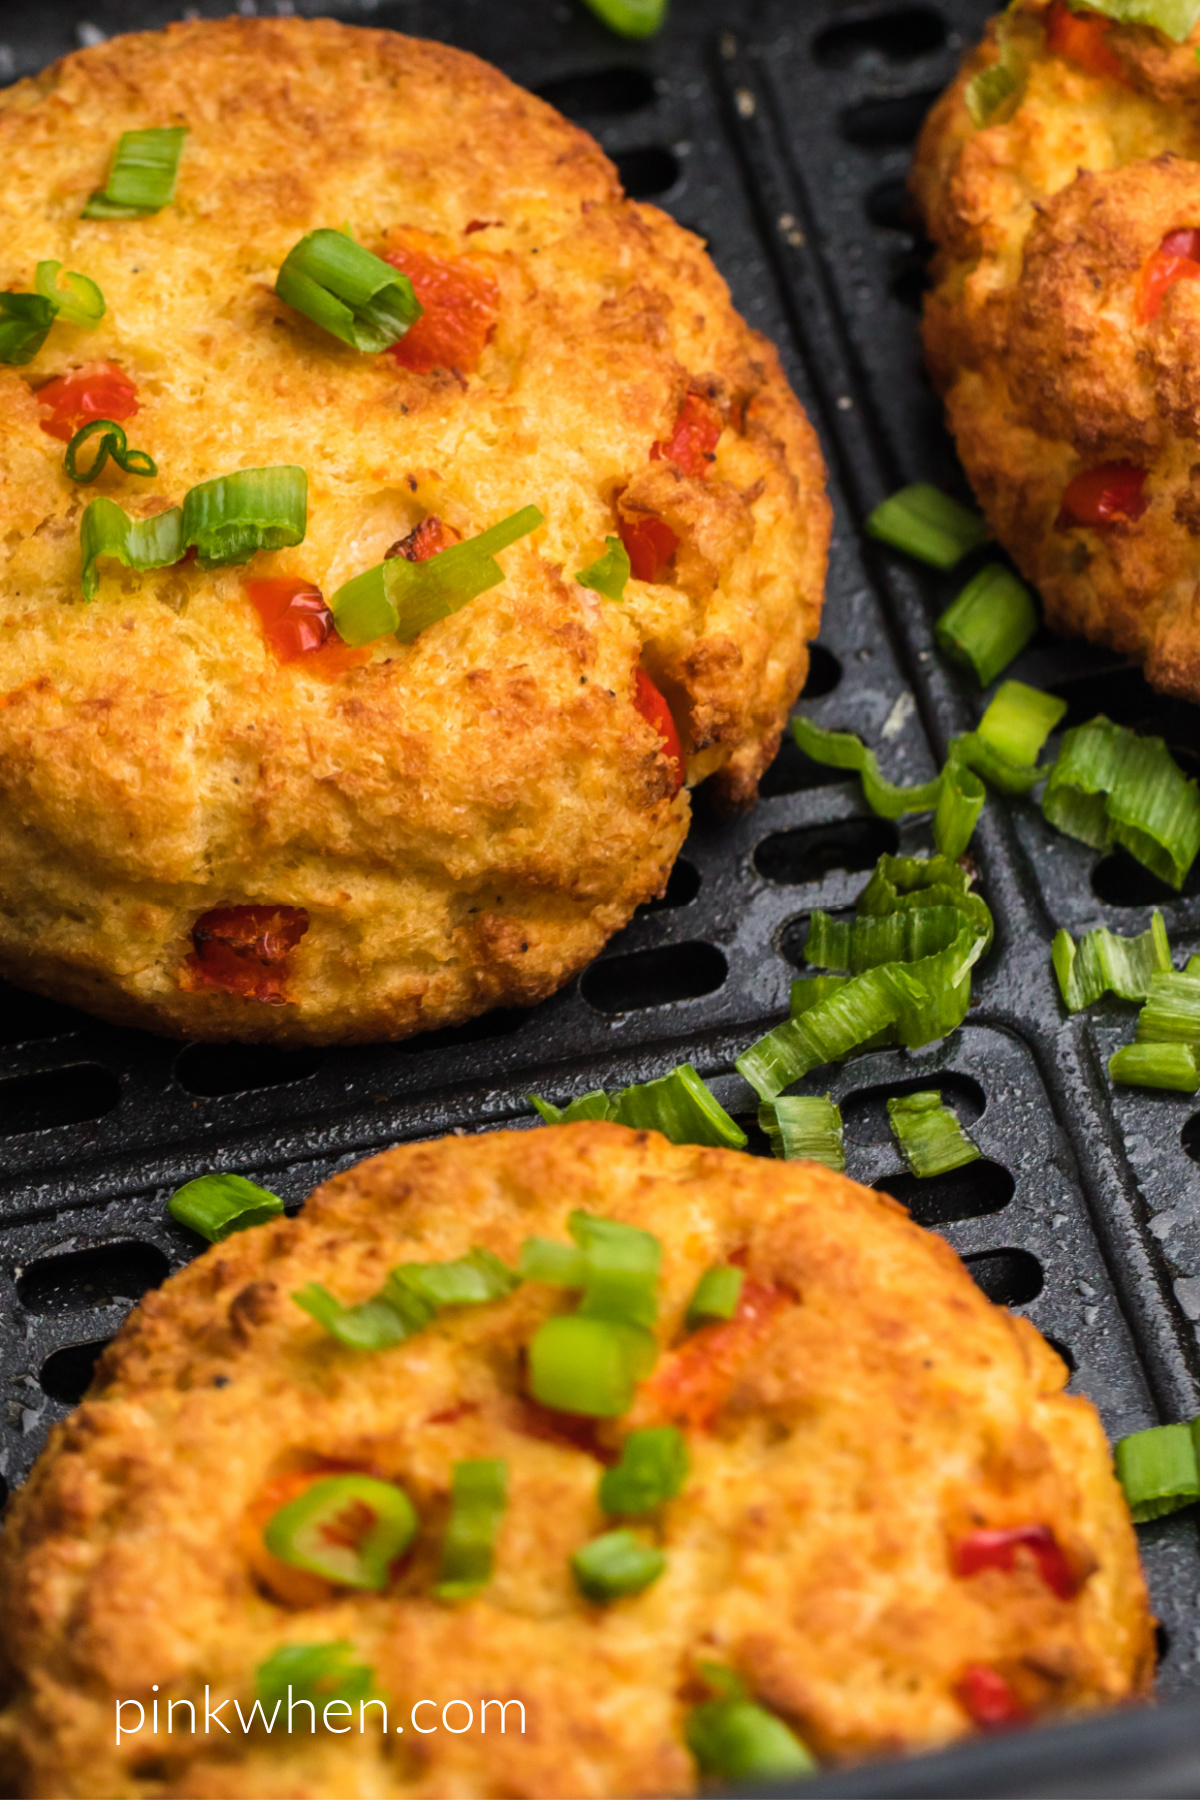 Close up photo of cooked crab cakes in the air fryer basket.